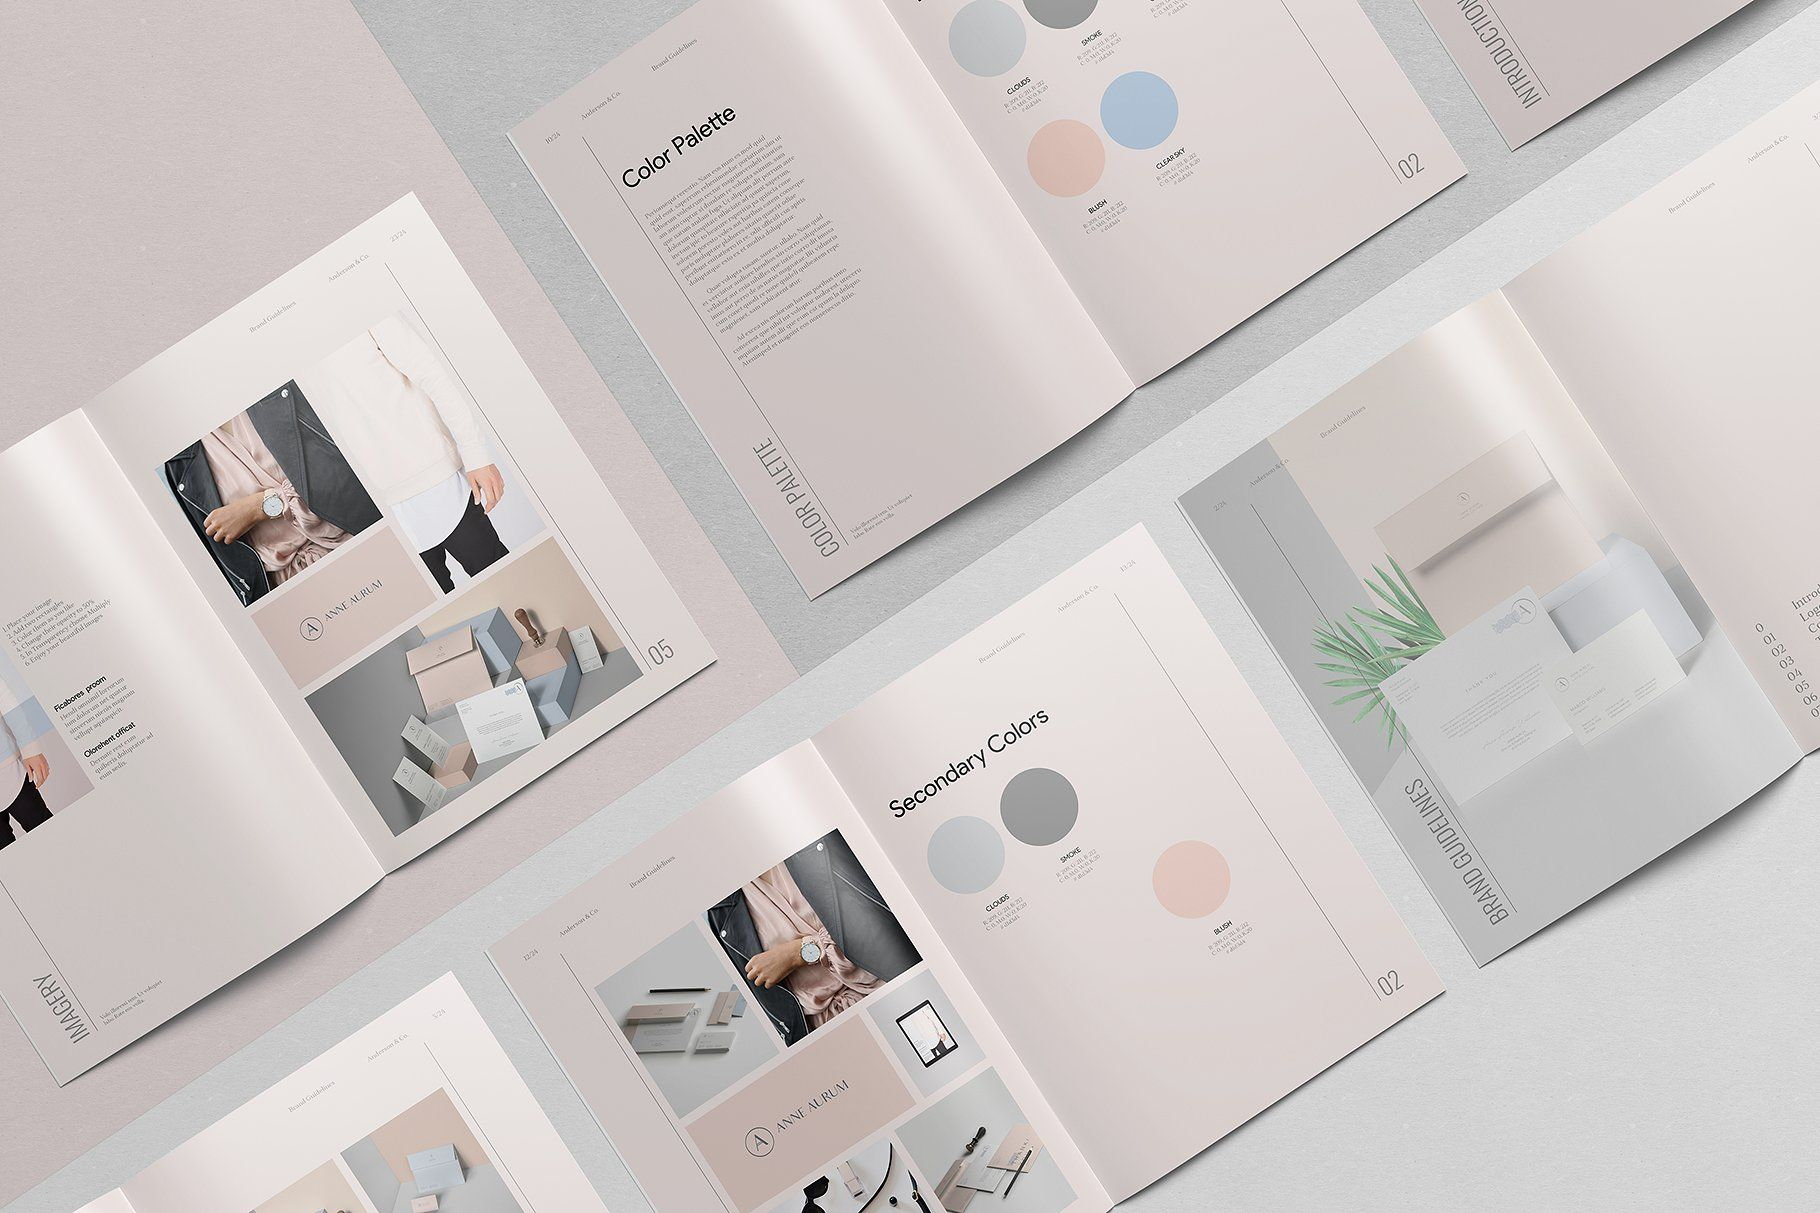 Anderson Brand Guidelines Template By Amabile On Creativemarket